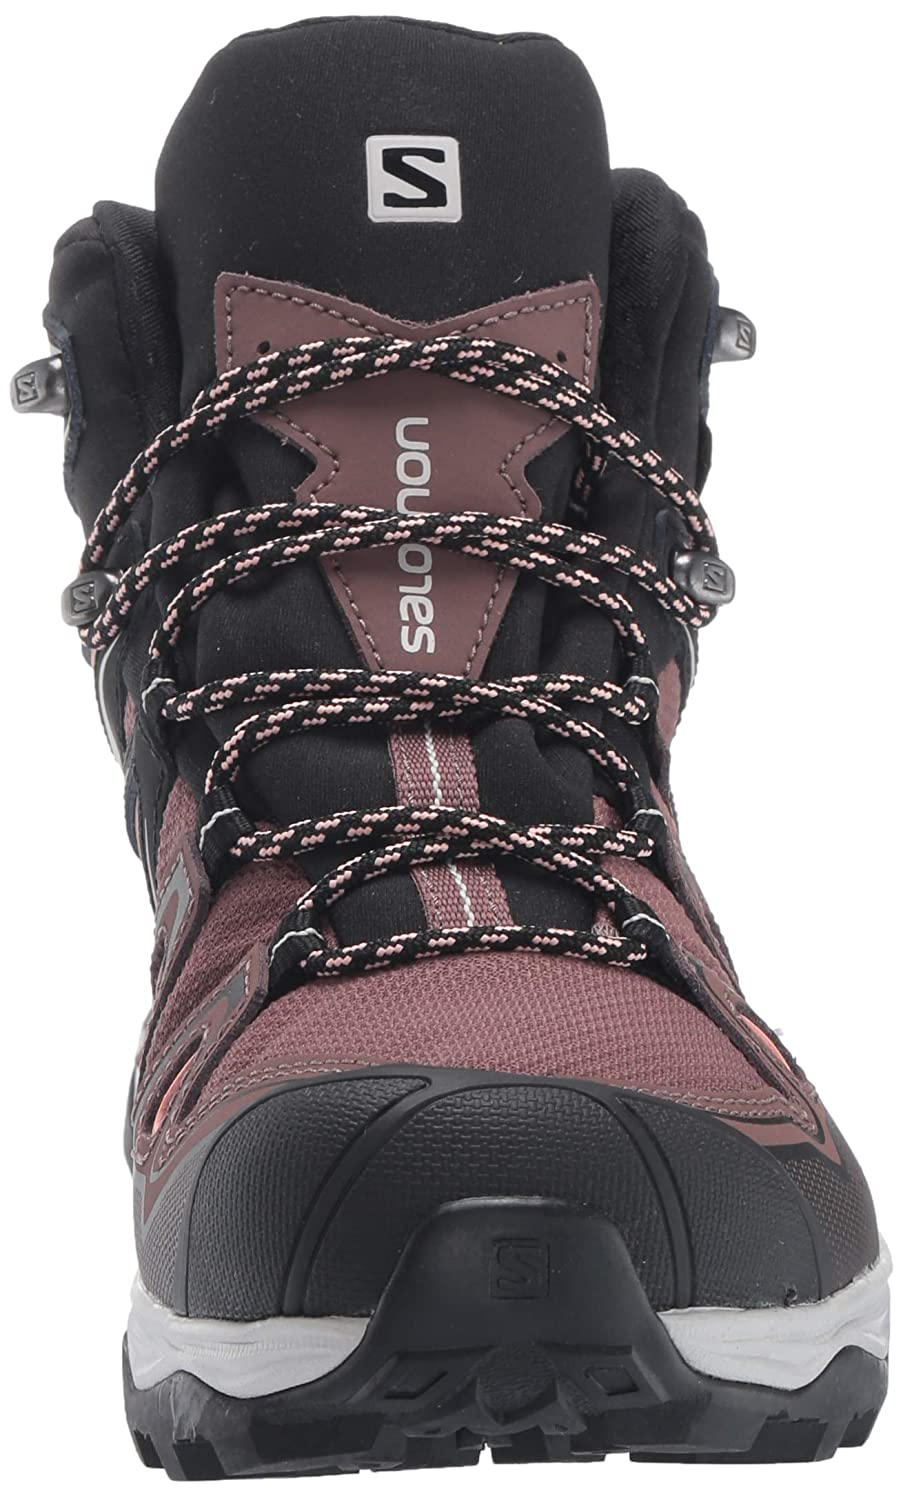 Salomon Womens X Ultra 3 Mid GTX Hiking Boots